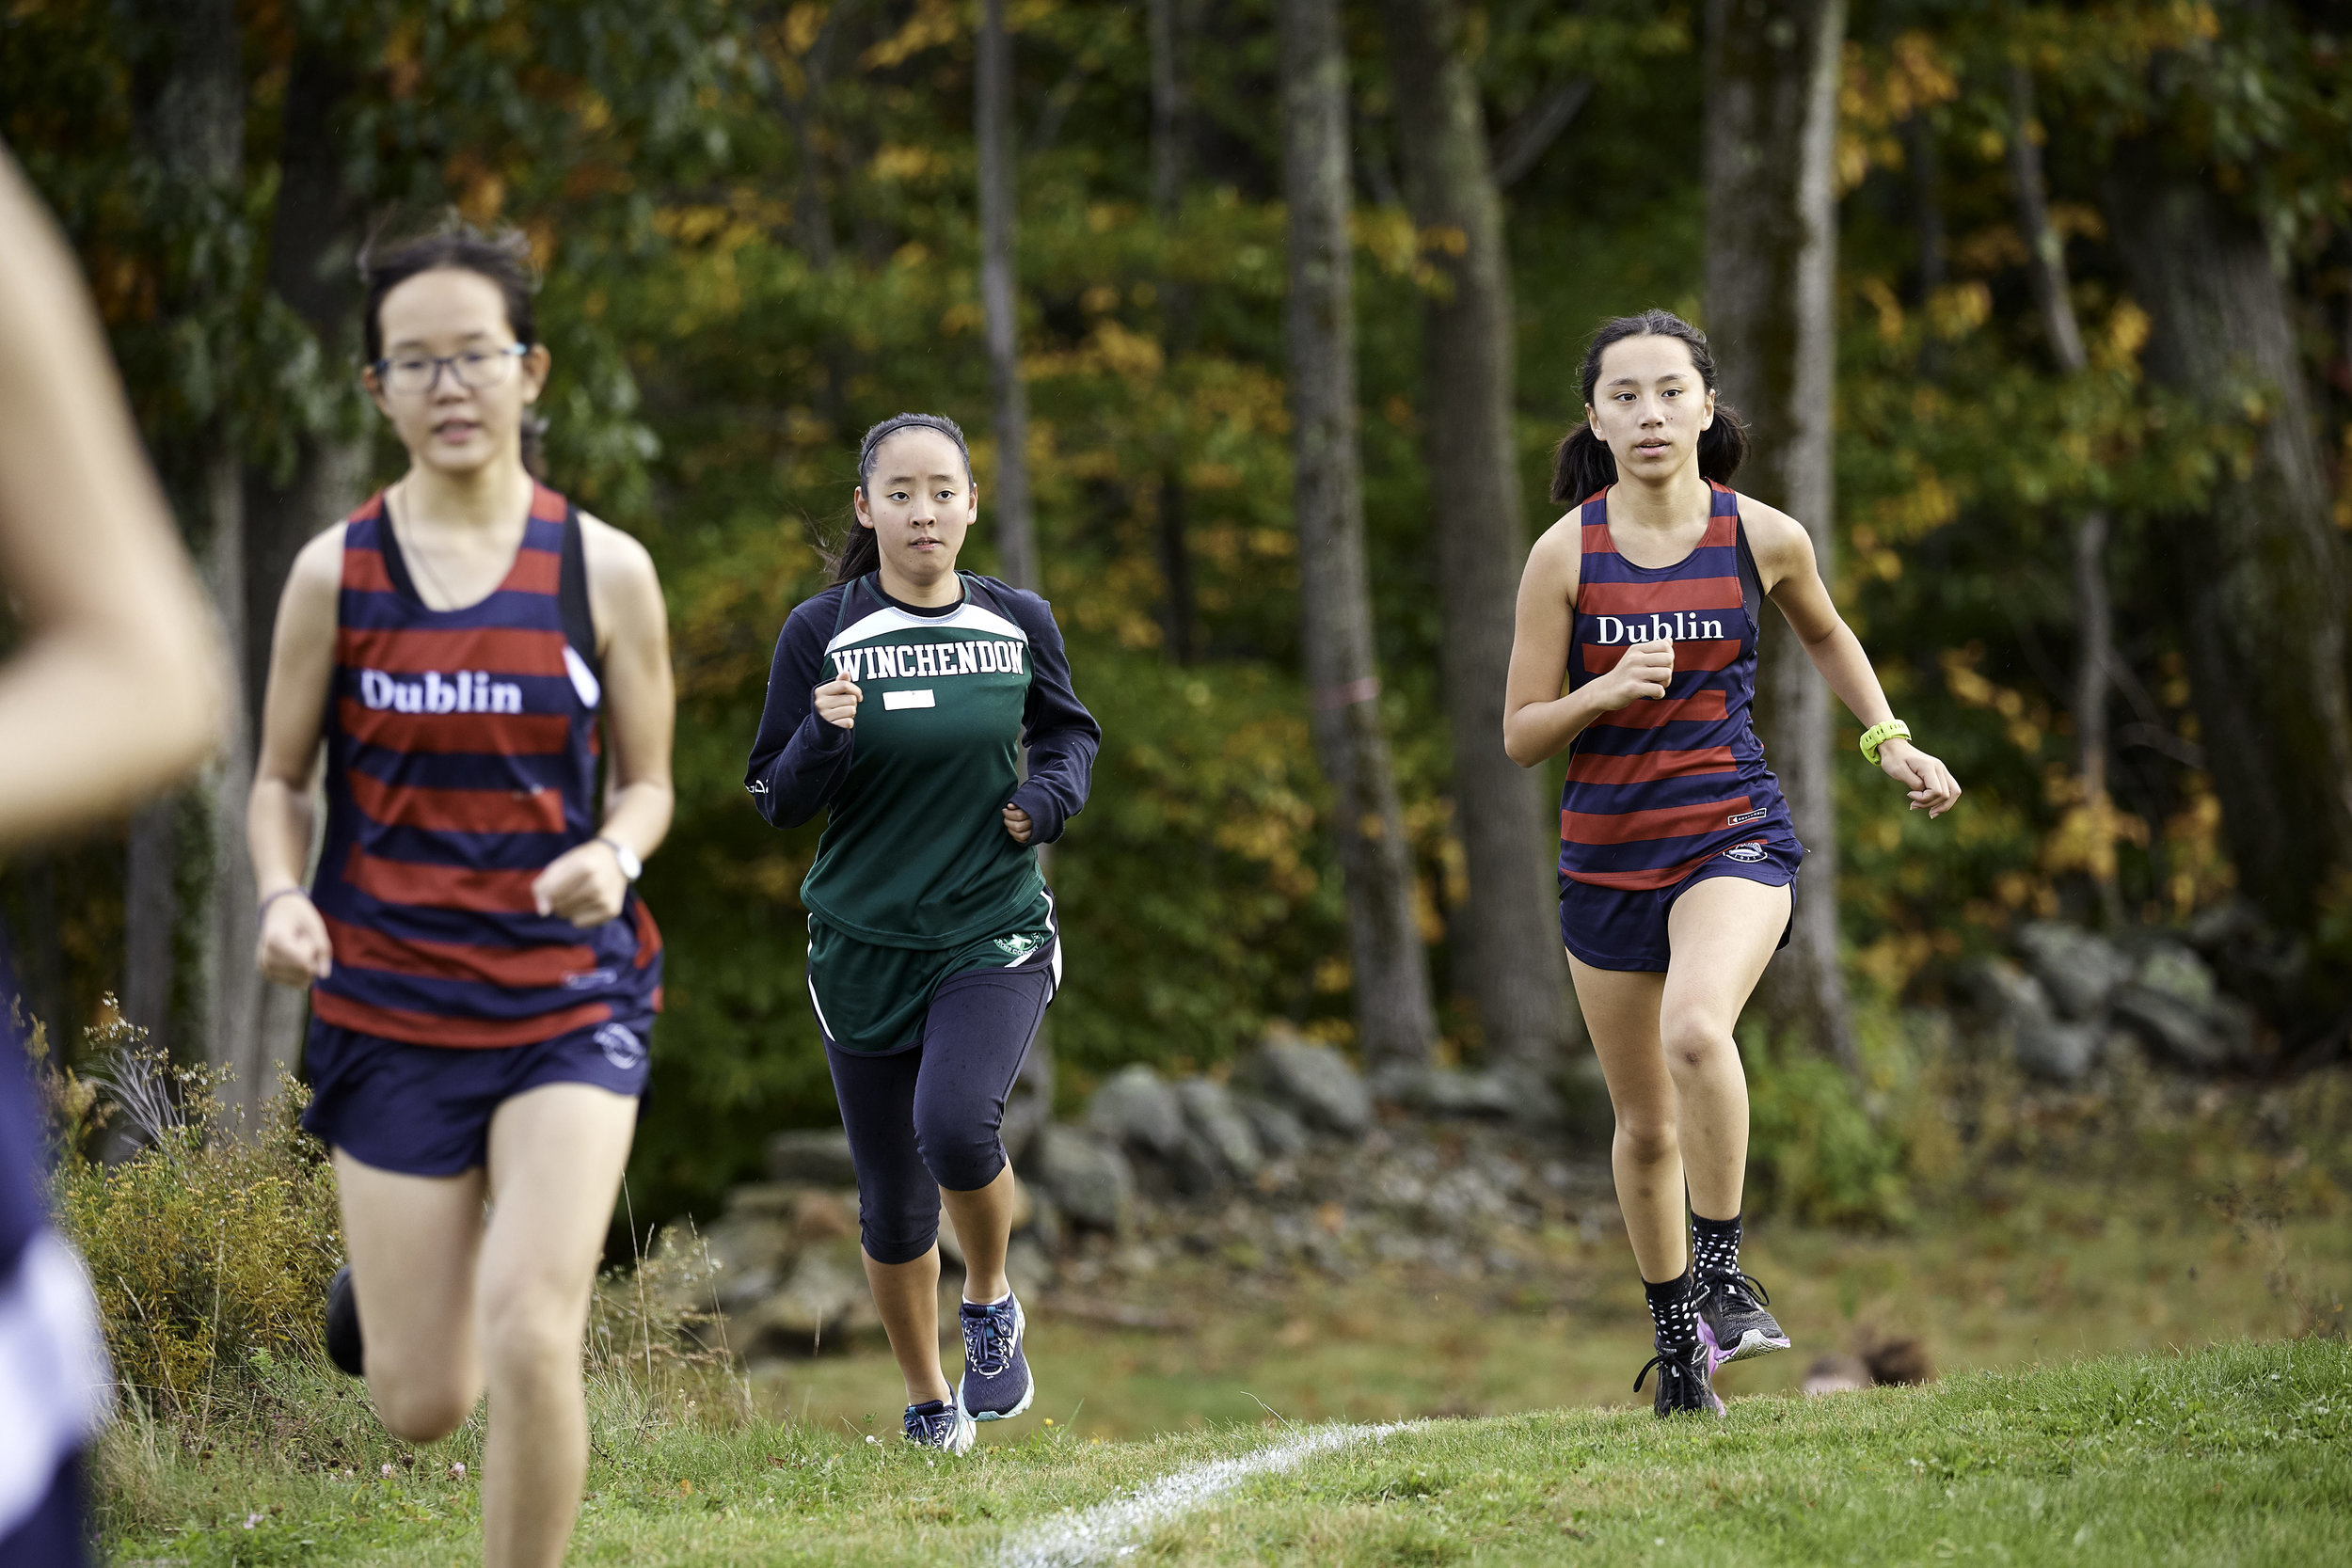 Dublion Invitational - October 12, 2018 - 136542.jpg